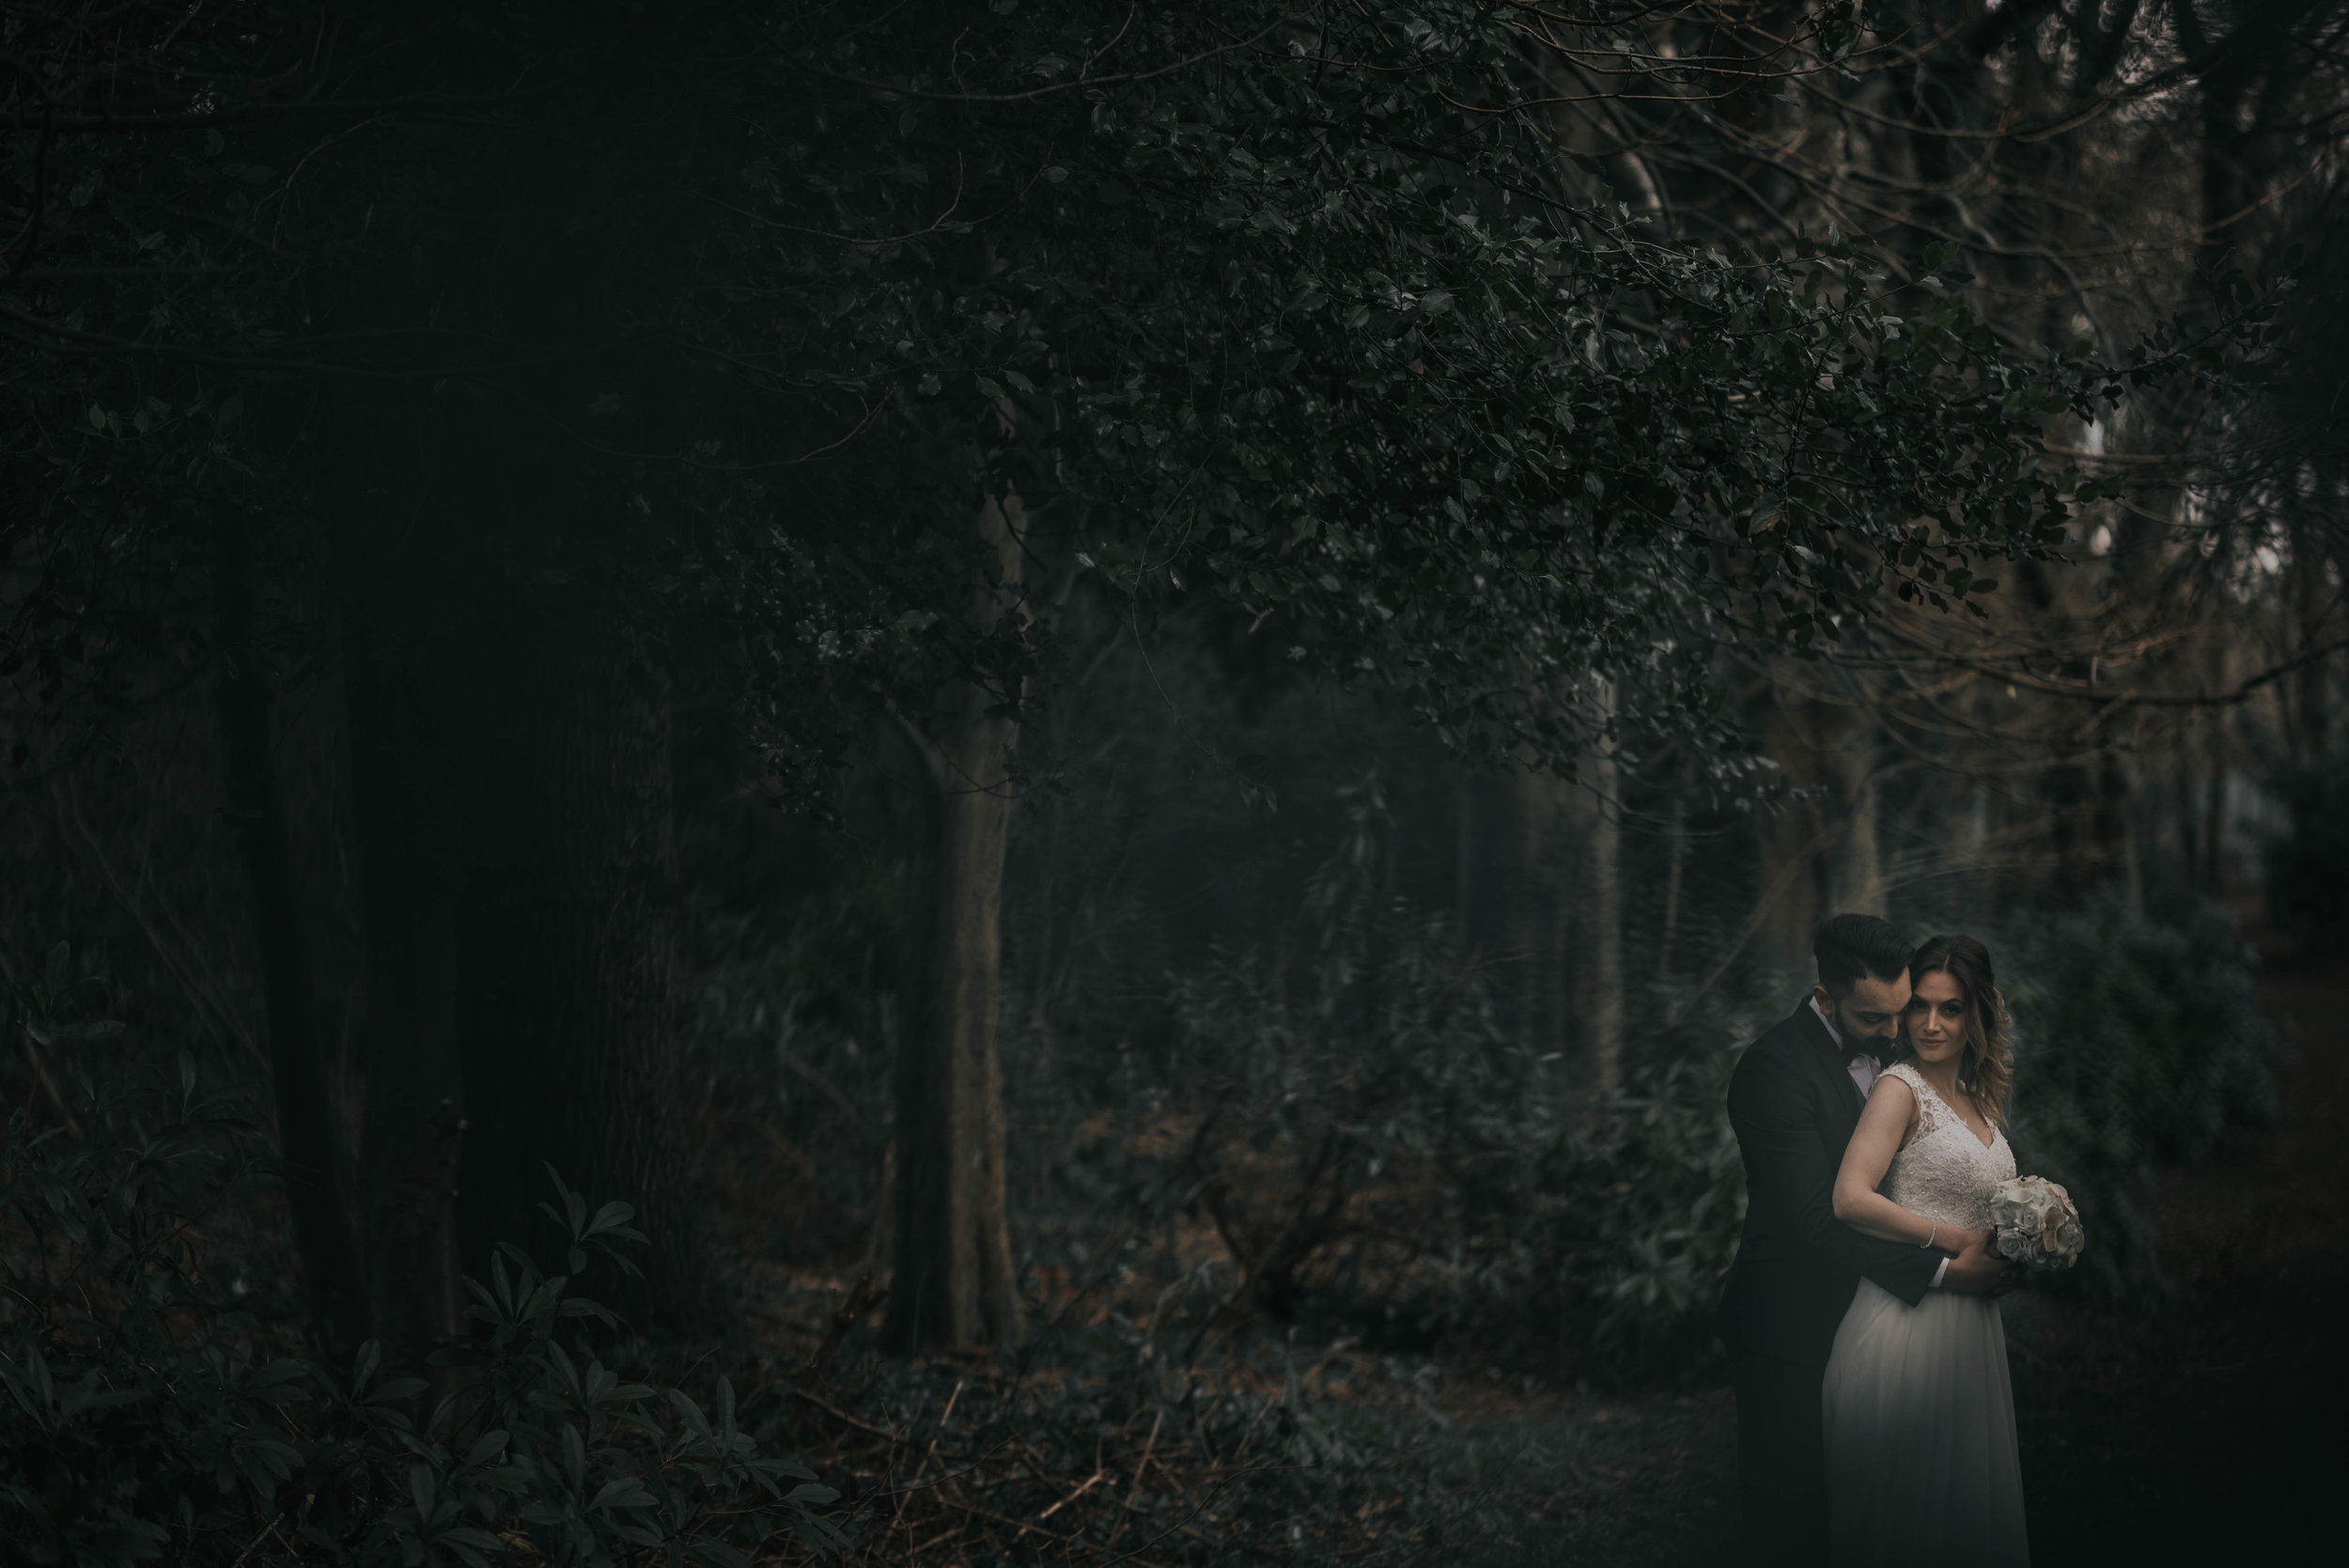 a dark woodland scene with the bride and groom in the bottom left hand side of the image